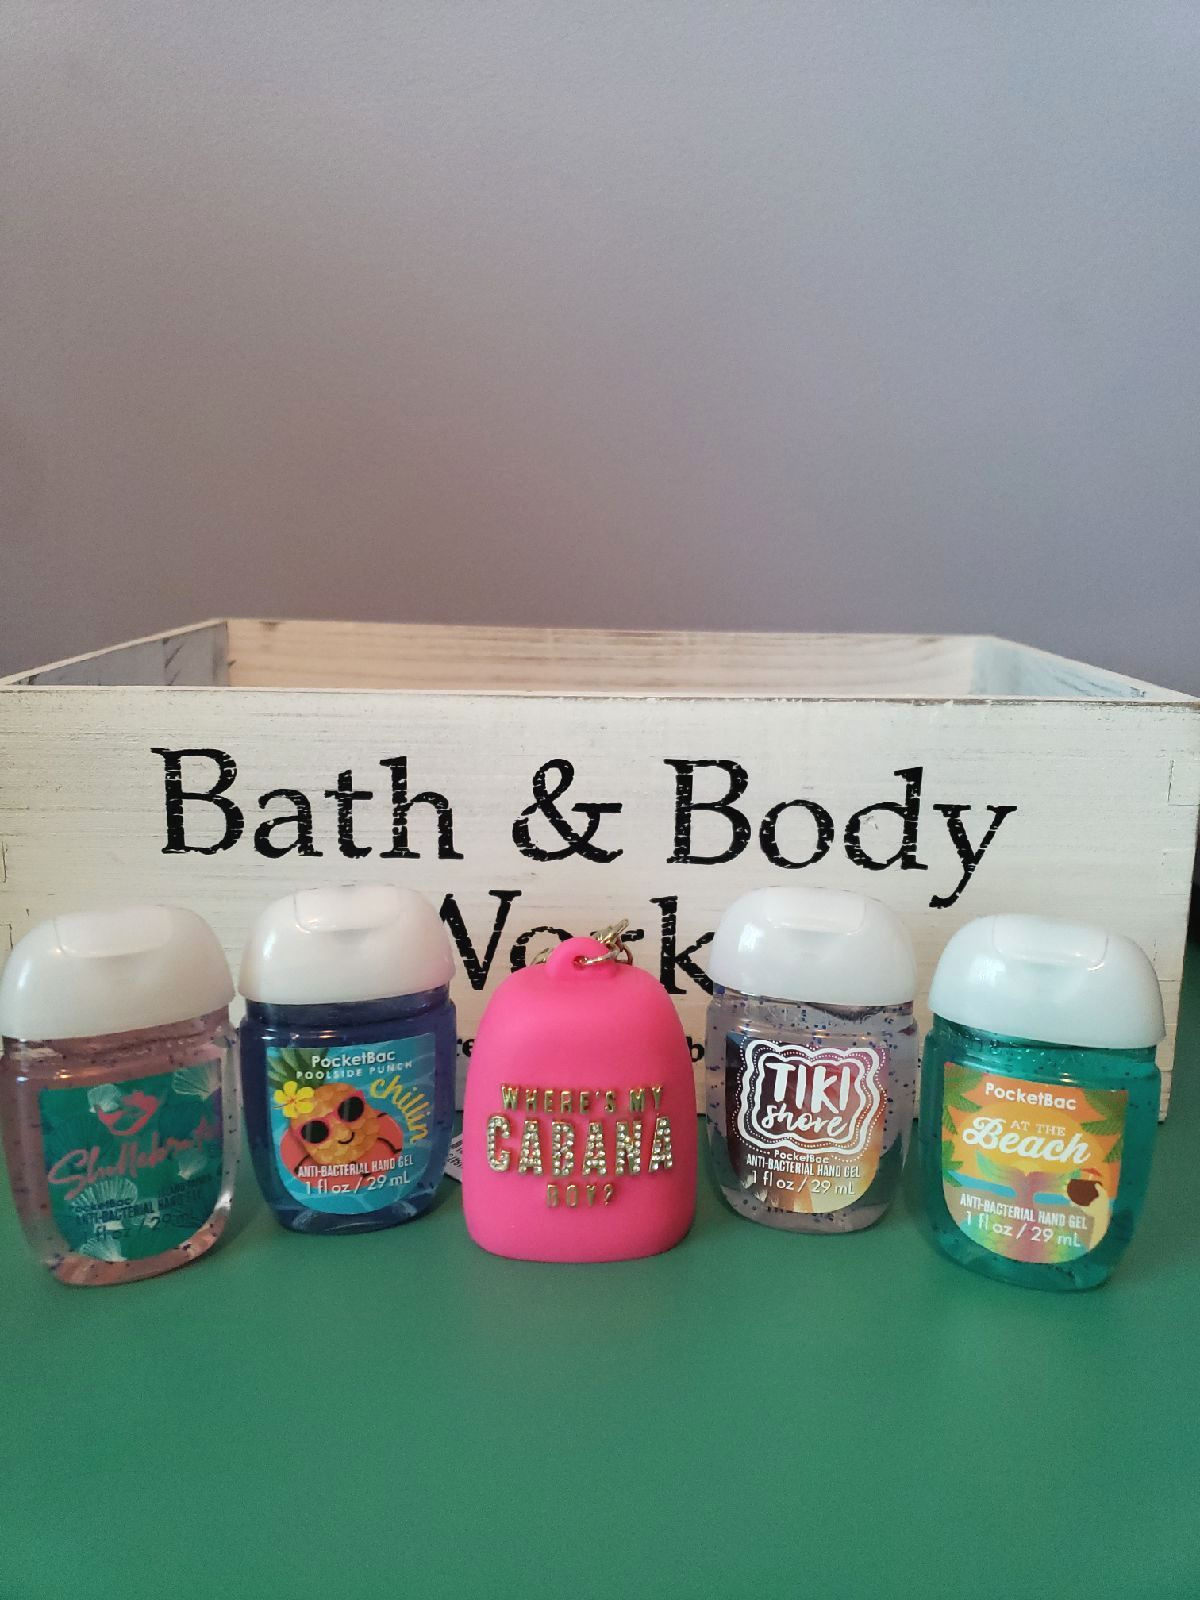 Bath And Body Works 5 Piece Pocketbac Set Includes Pink Bling